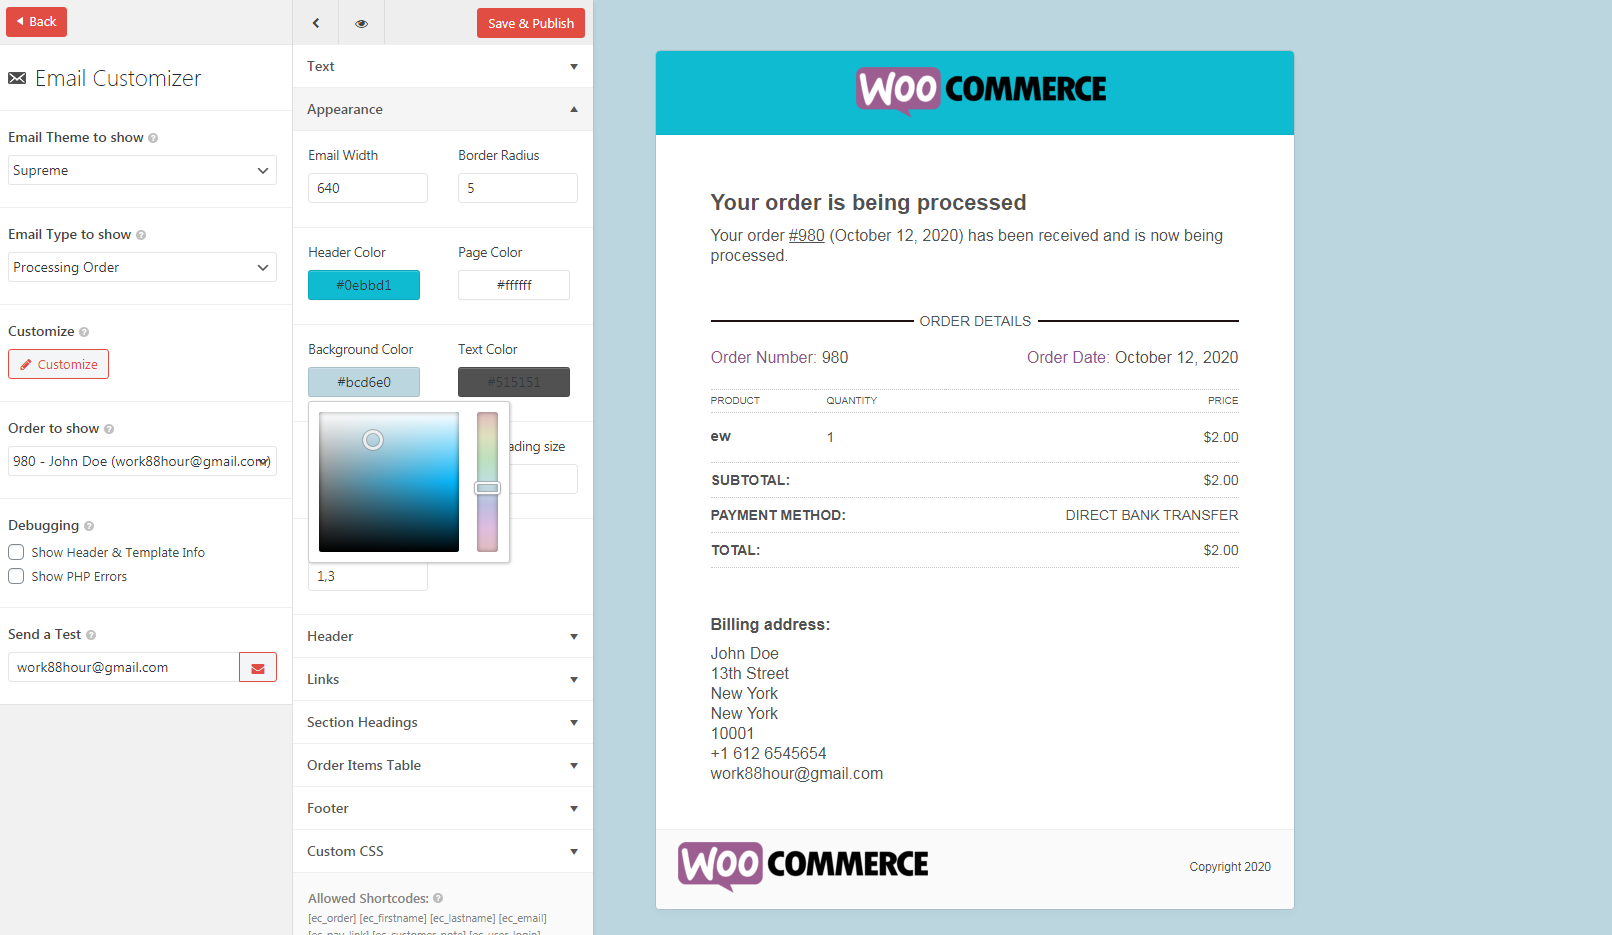 Make Email Customizer for WooCommerce